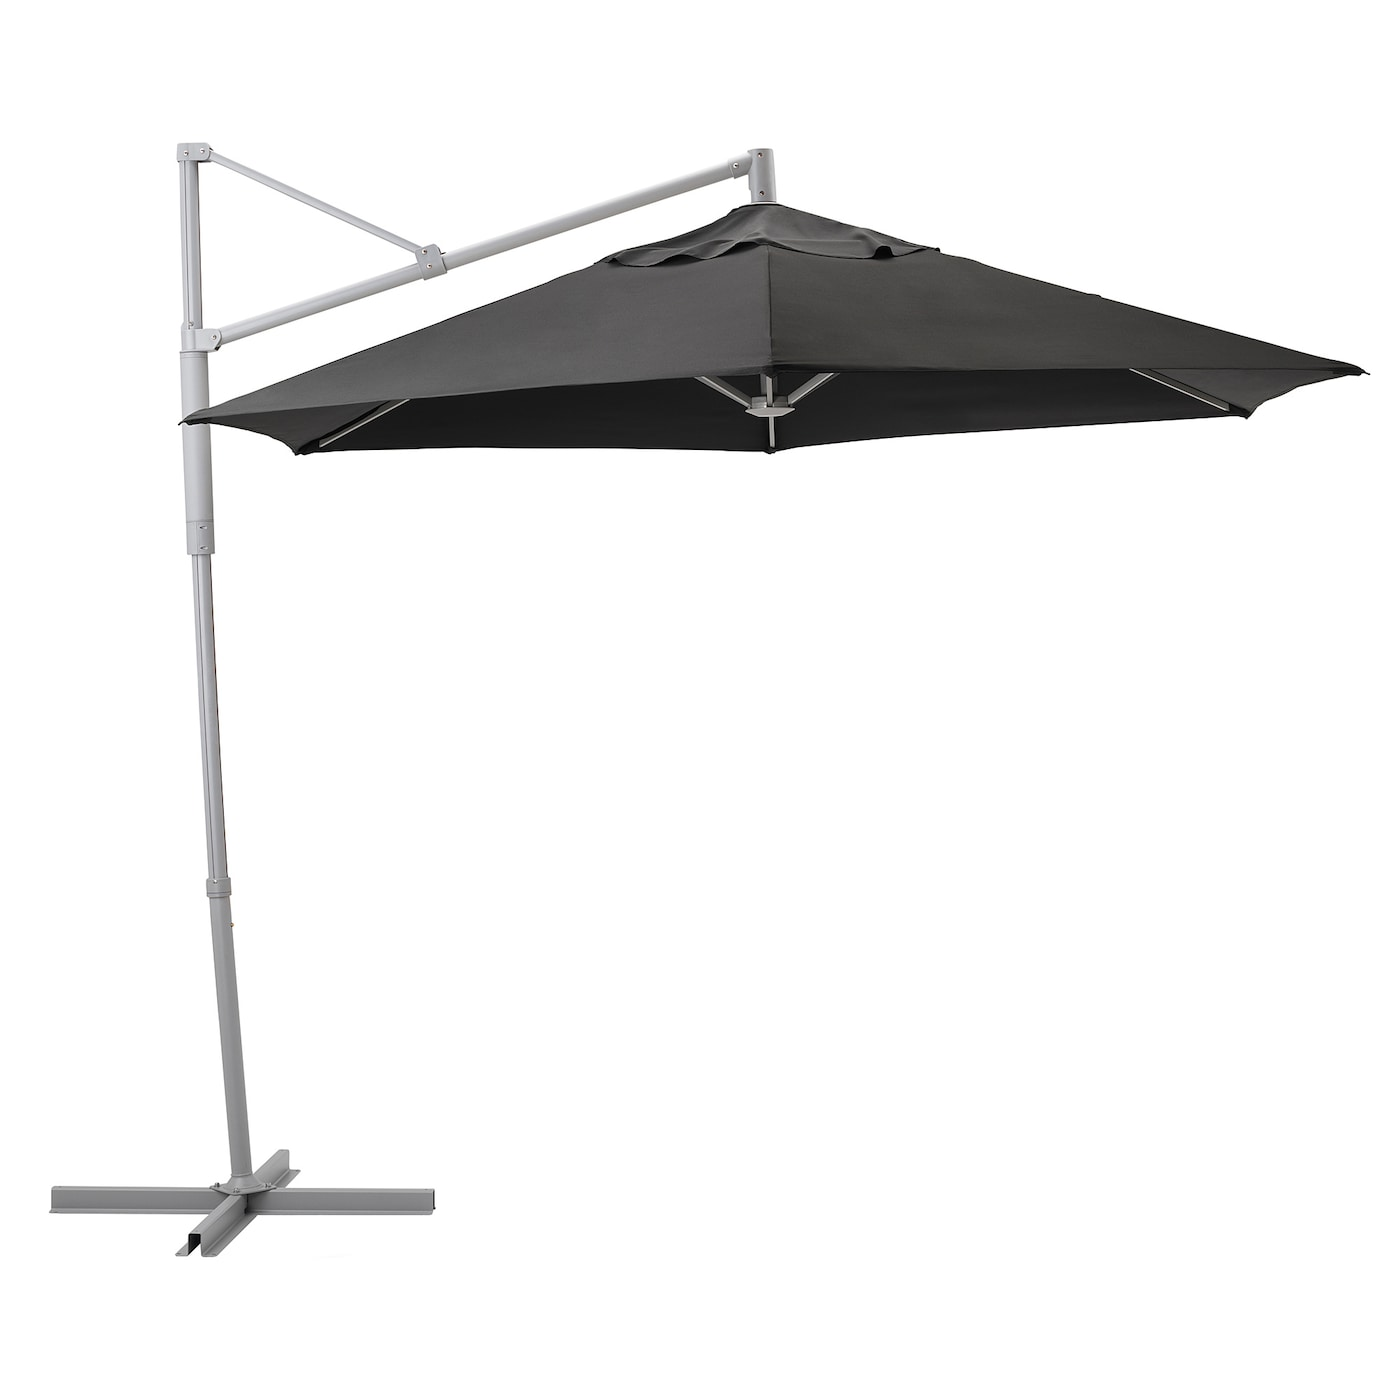 IKEA LINDÖJA/OXNÖ parasol, hanging You open, close or tilt the parasol by using the discreet handle.